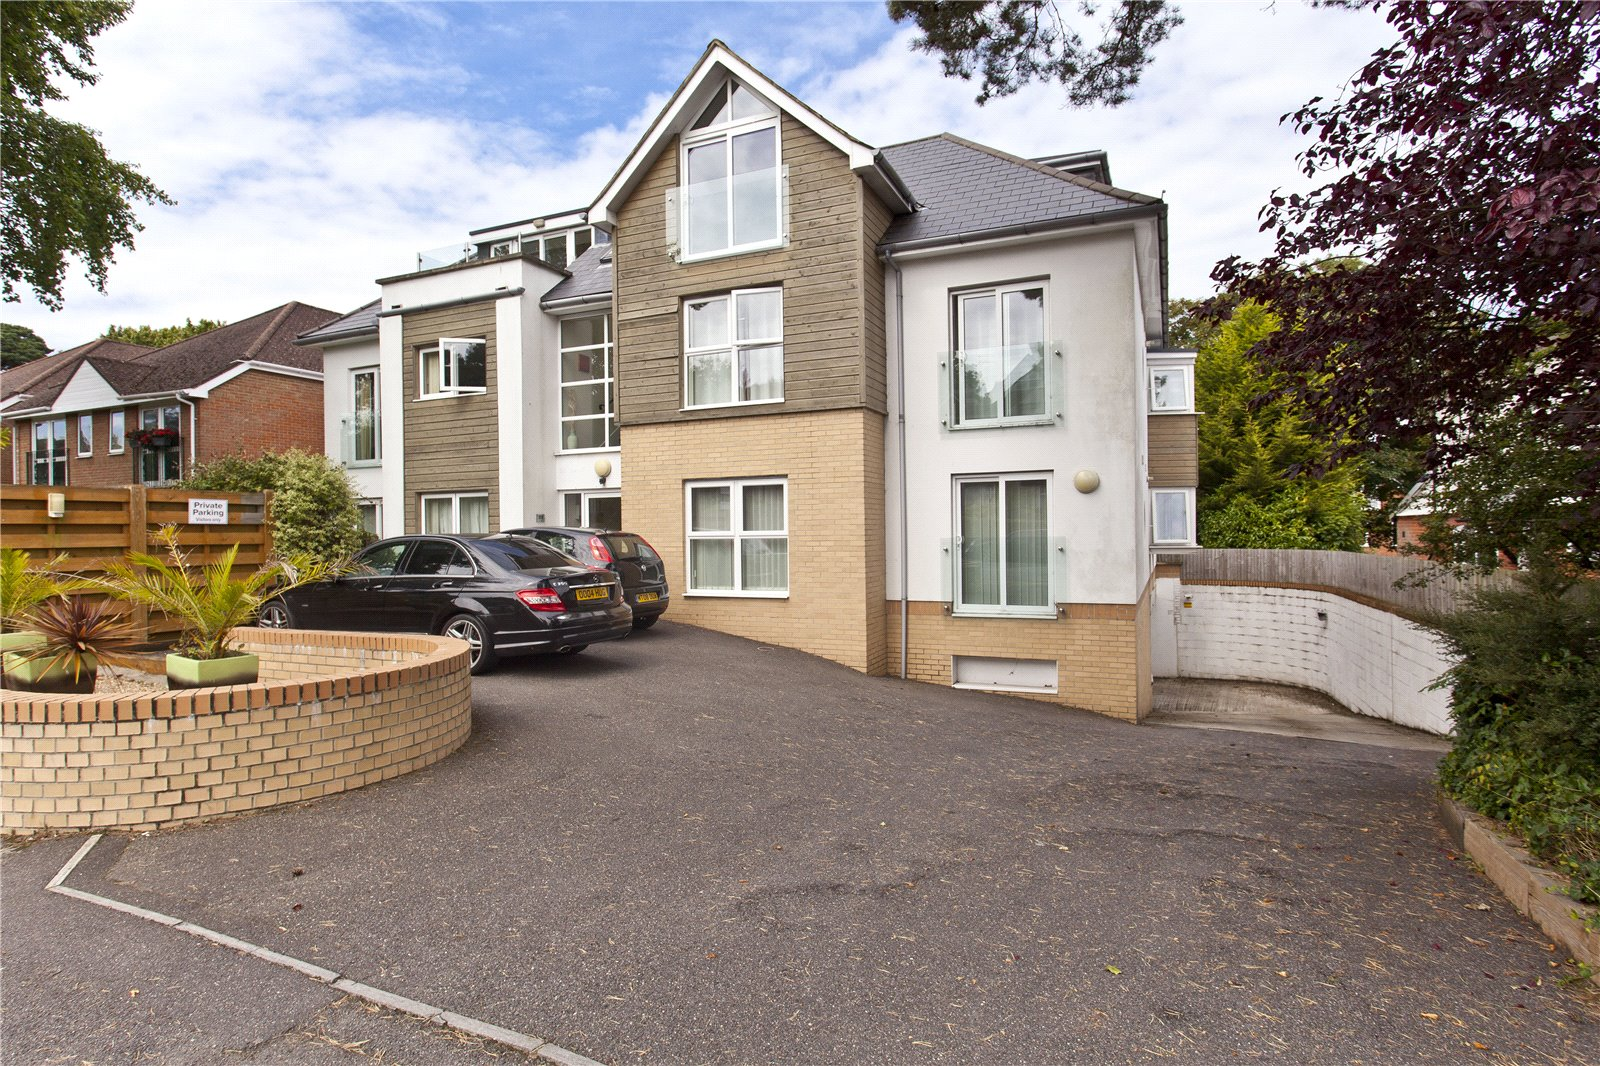 2 bed apartment to rent in Poole 0